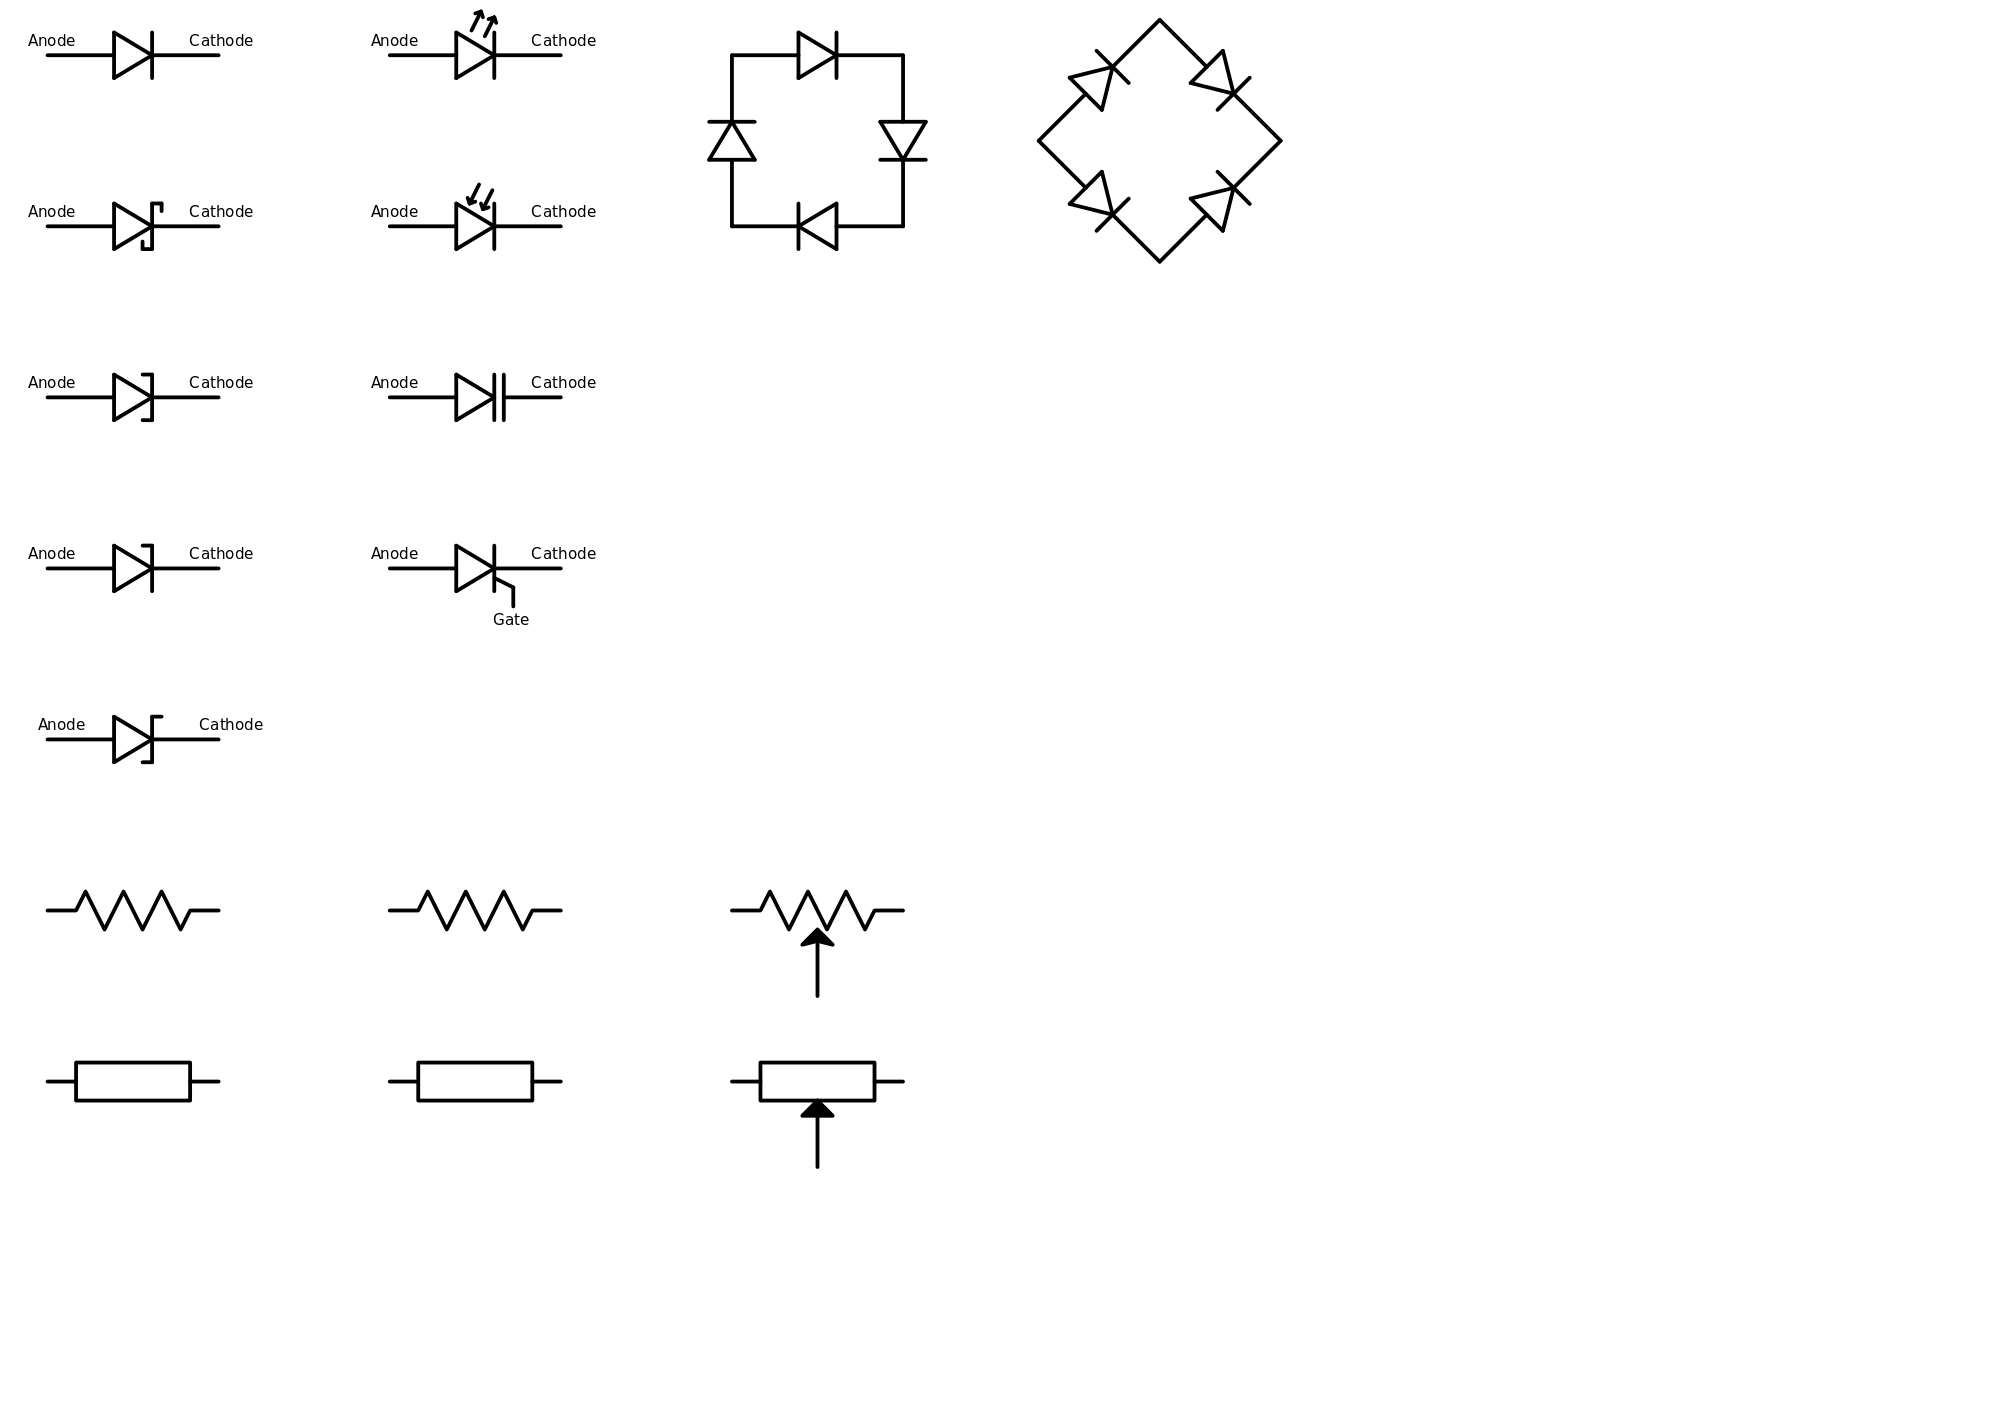 Electrical Symbols Electronics Symbols Make Schematics And Wiring